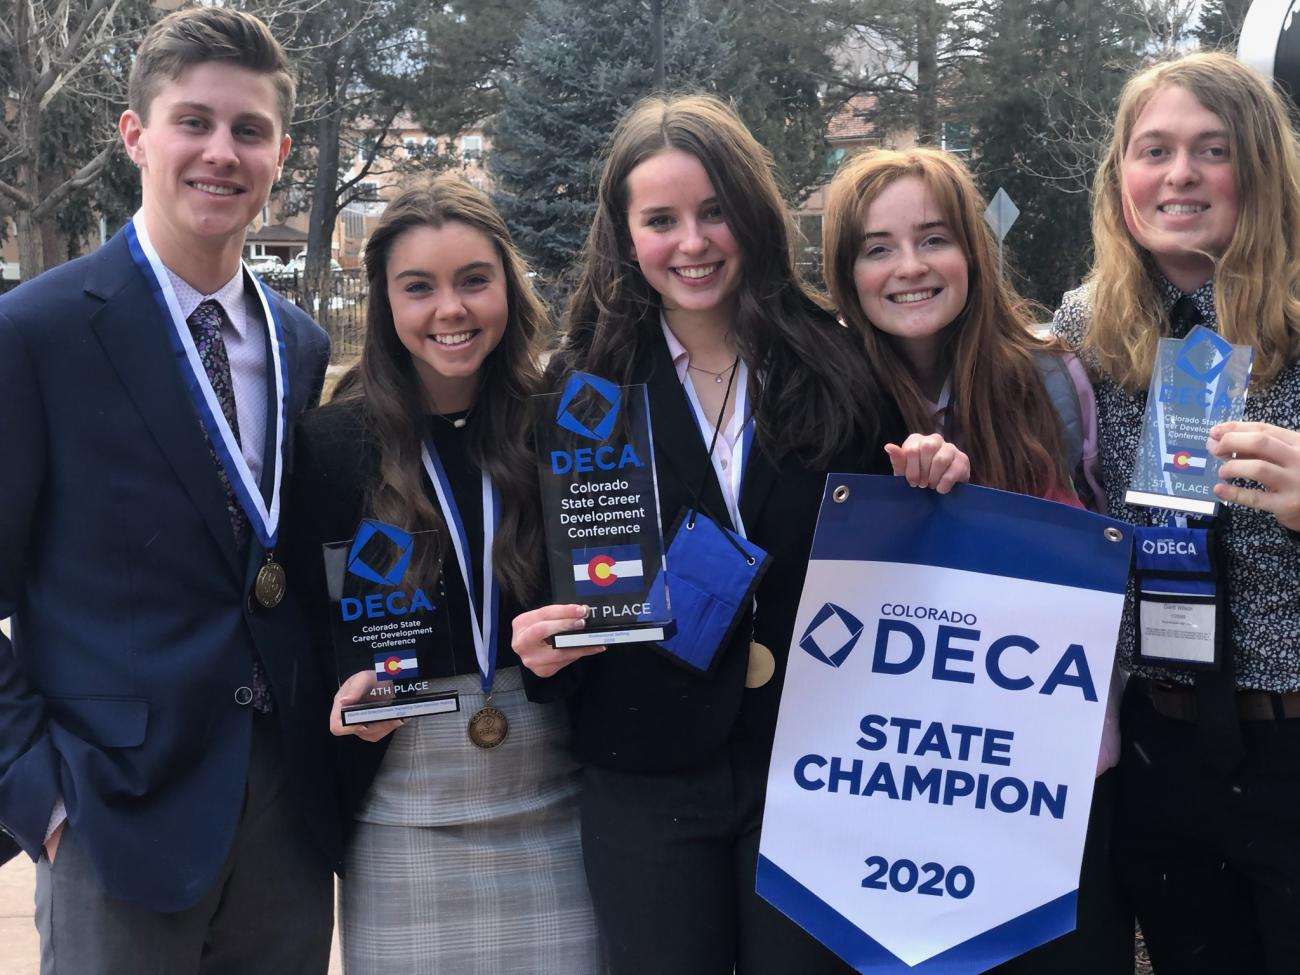 Deca National Qualifiers